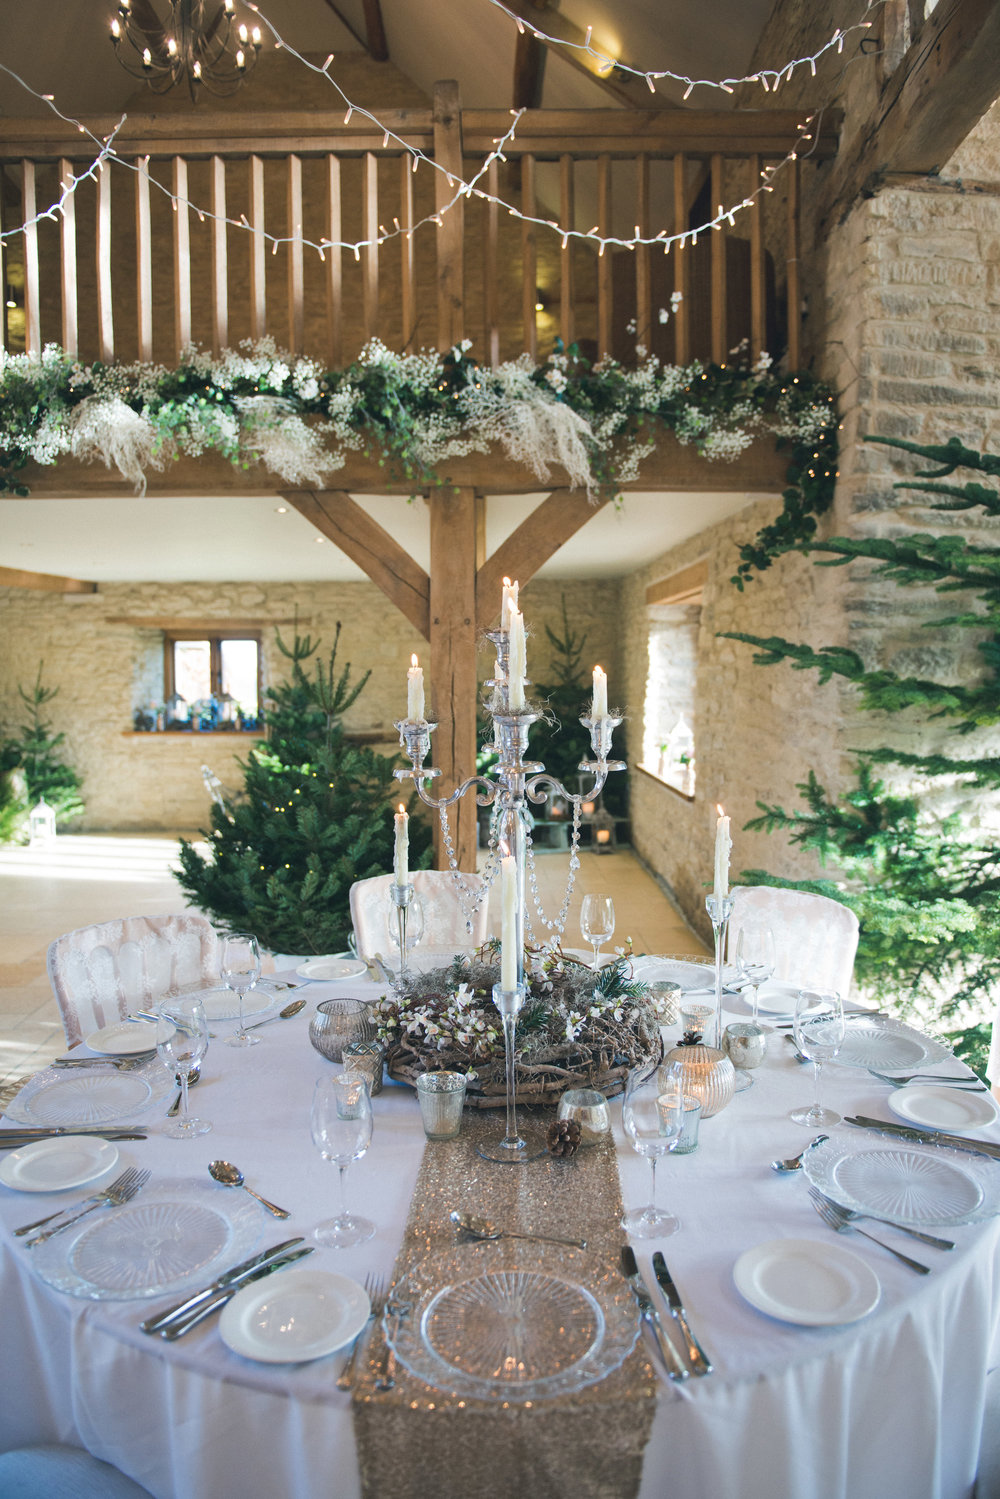 Kingscote_Barn_Wedding.jpg